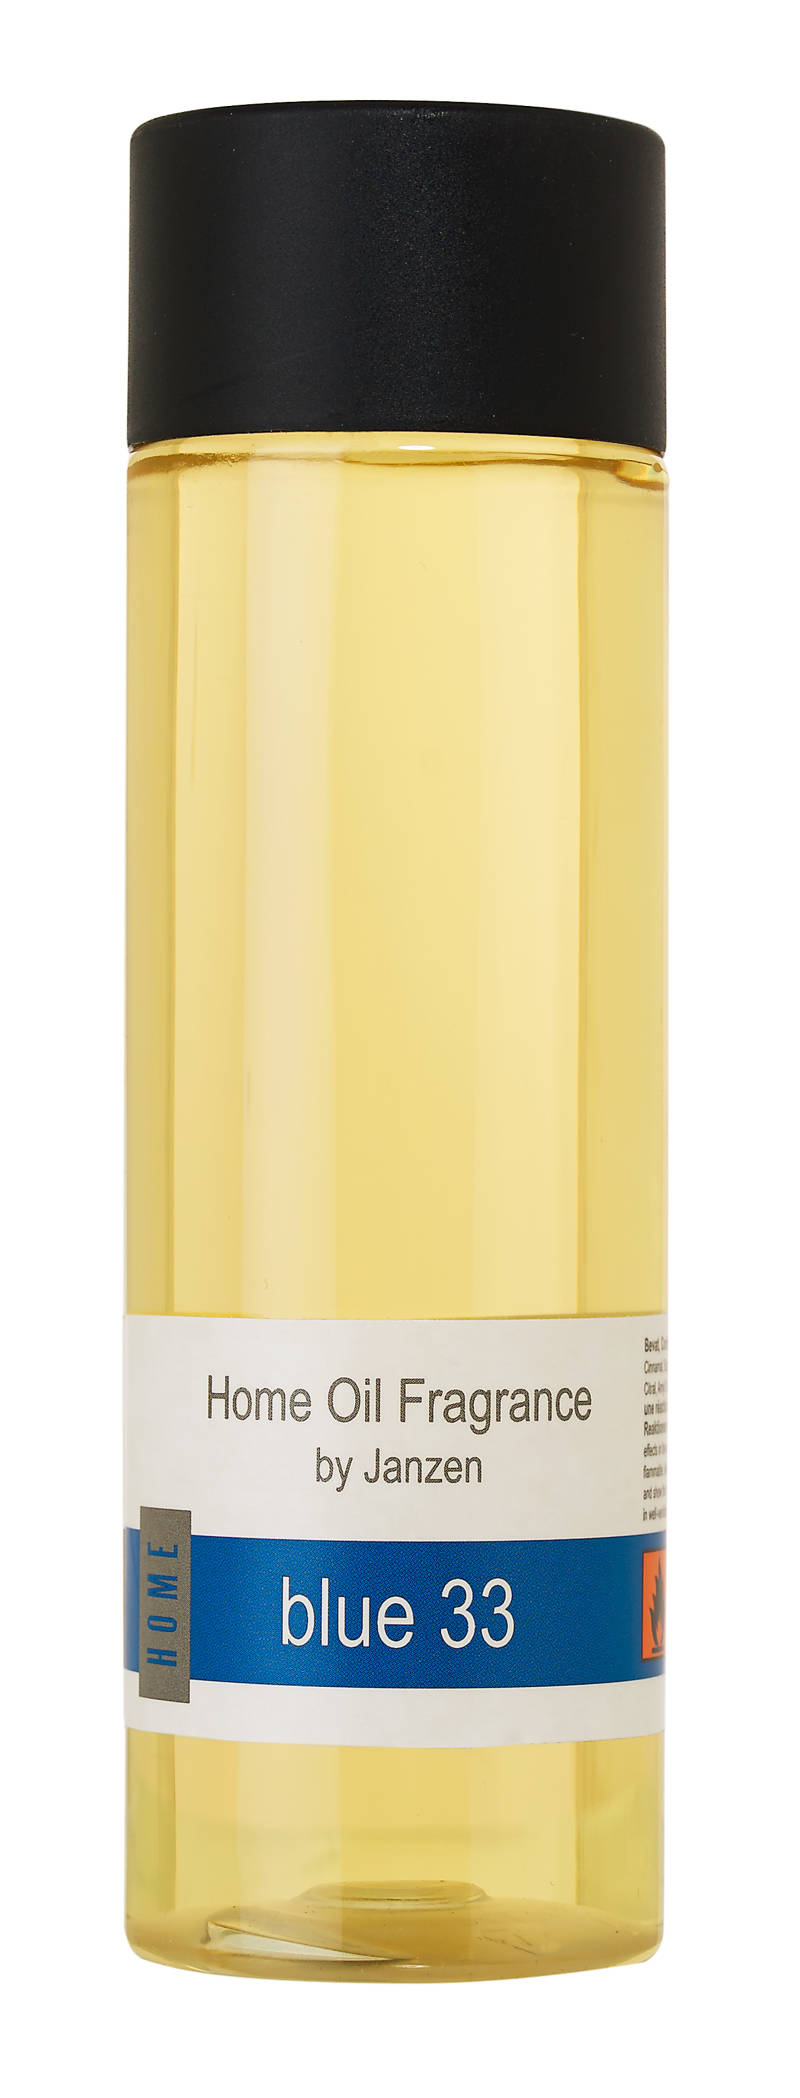 HOME OIL FRAGRANCE Navulling 33